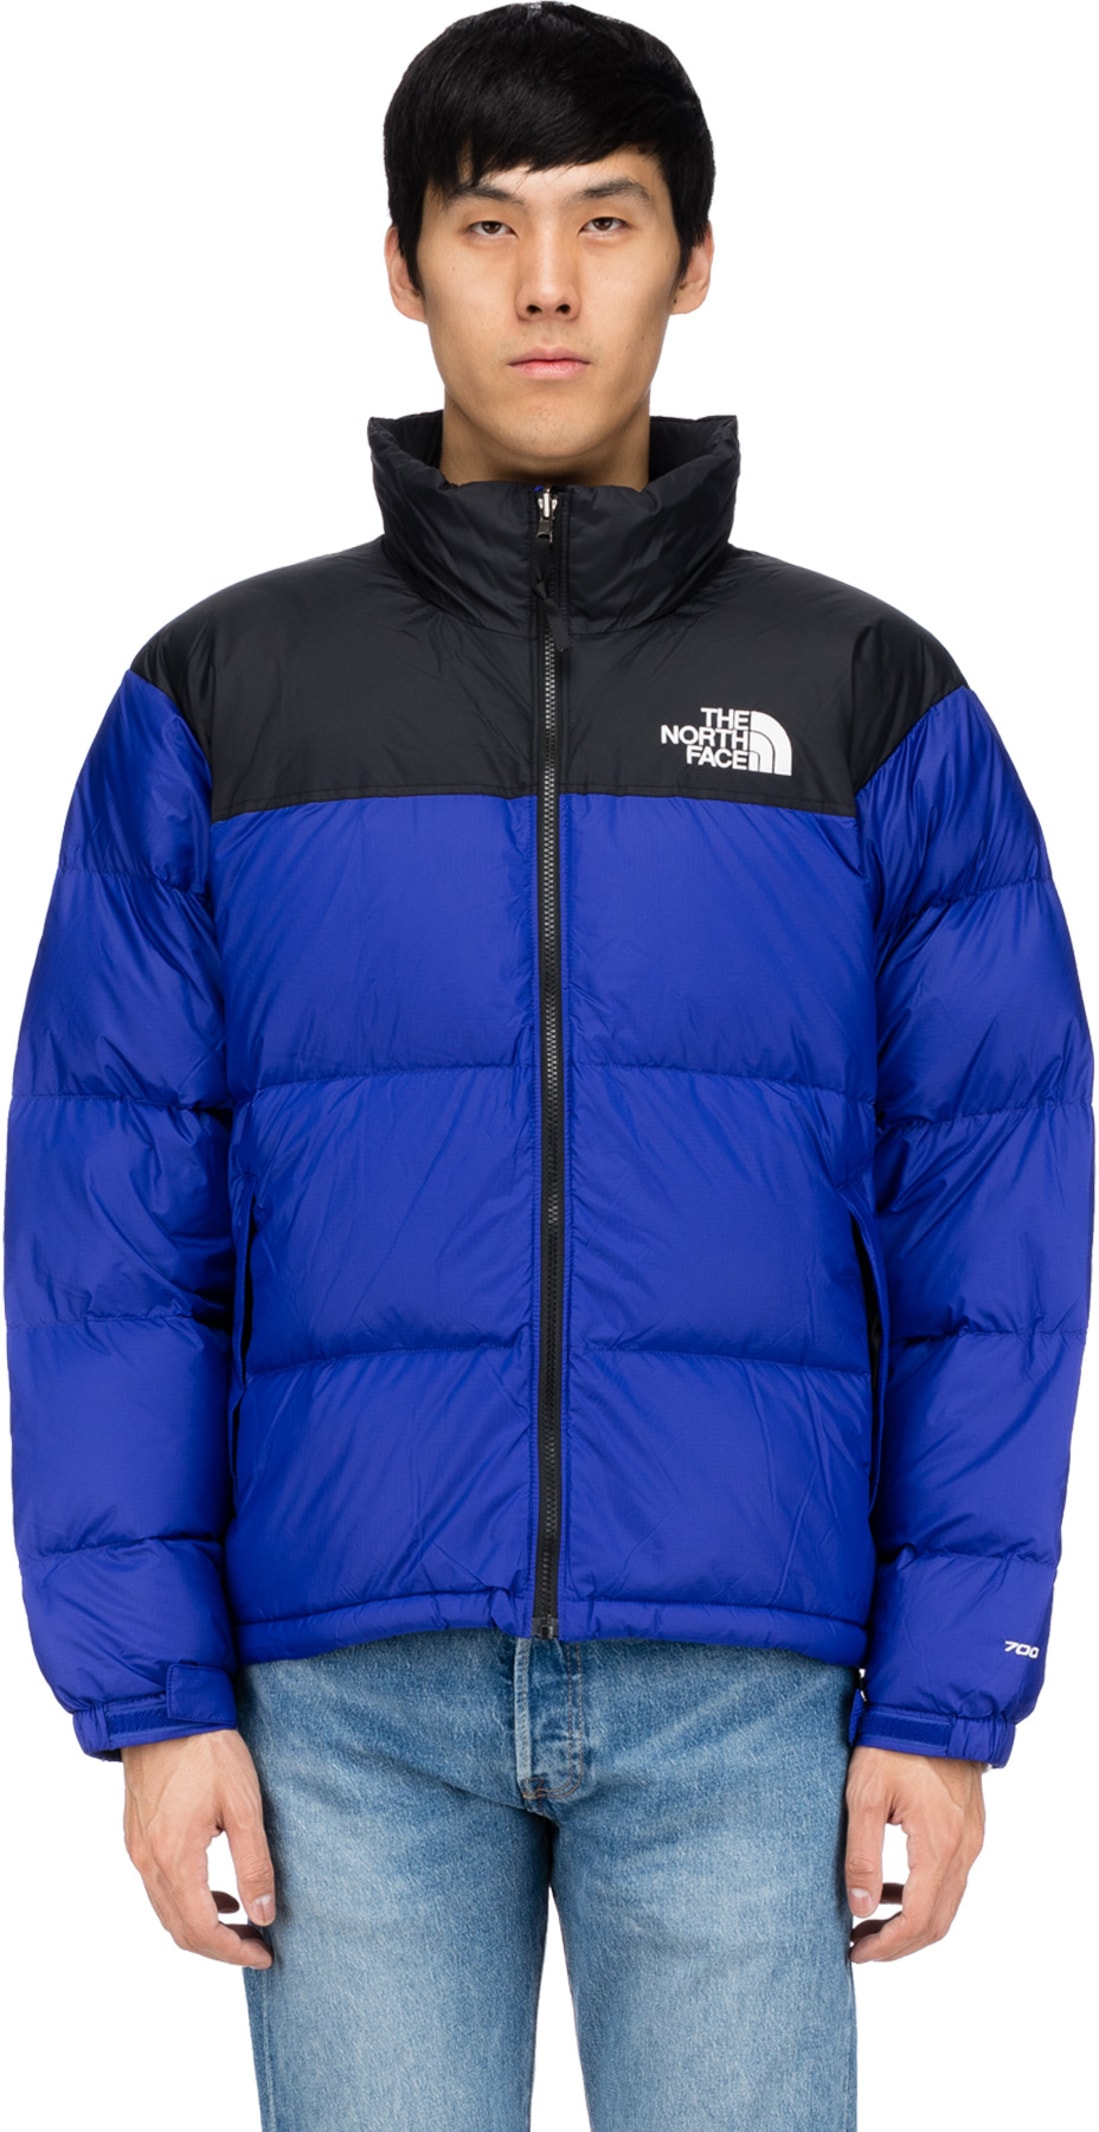 329c496aa02 the North Face: 1996 Retro Nuptse Jacket - Aztec Blue | influenceu